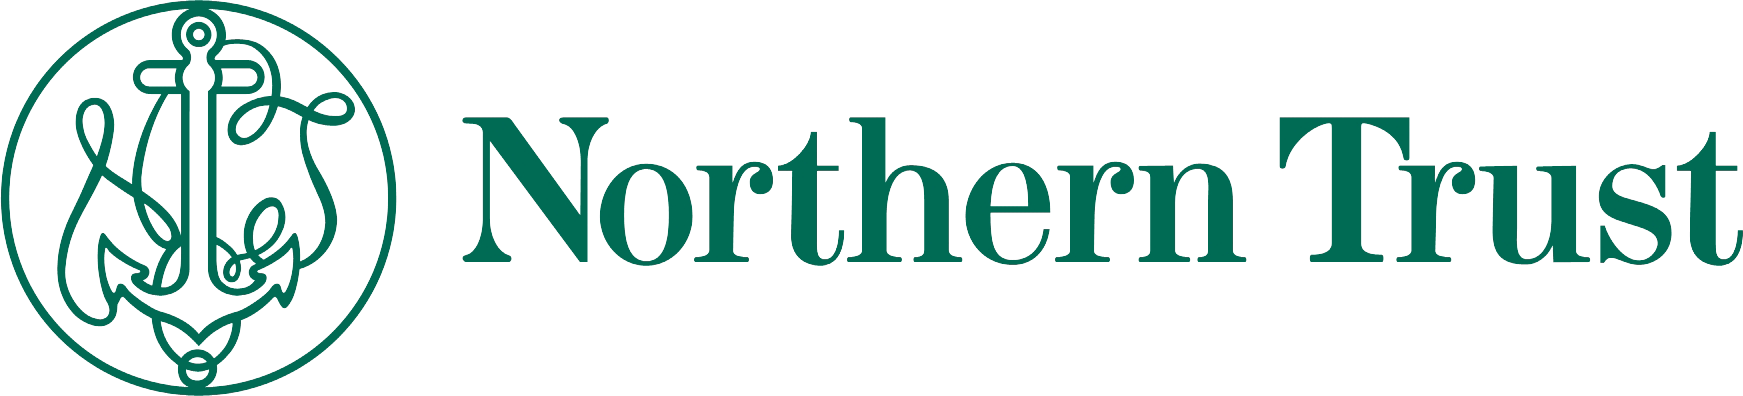 Northern Trust Names New EMEA Chief Technology Officer